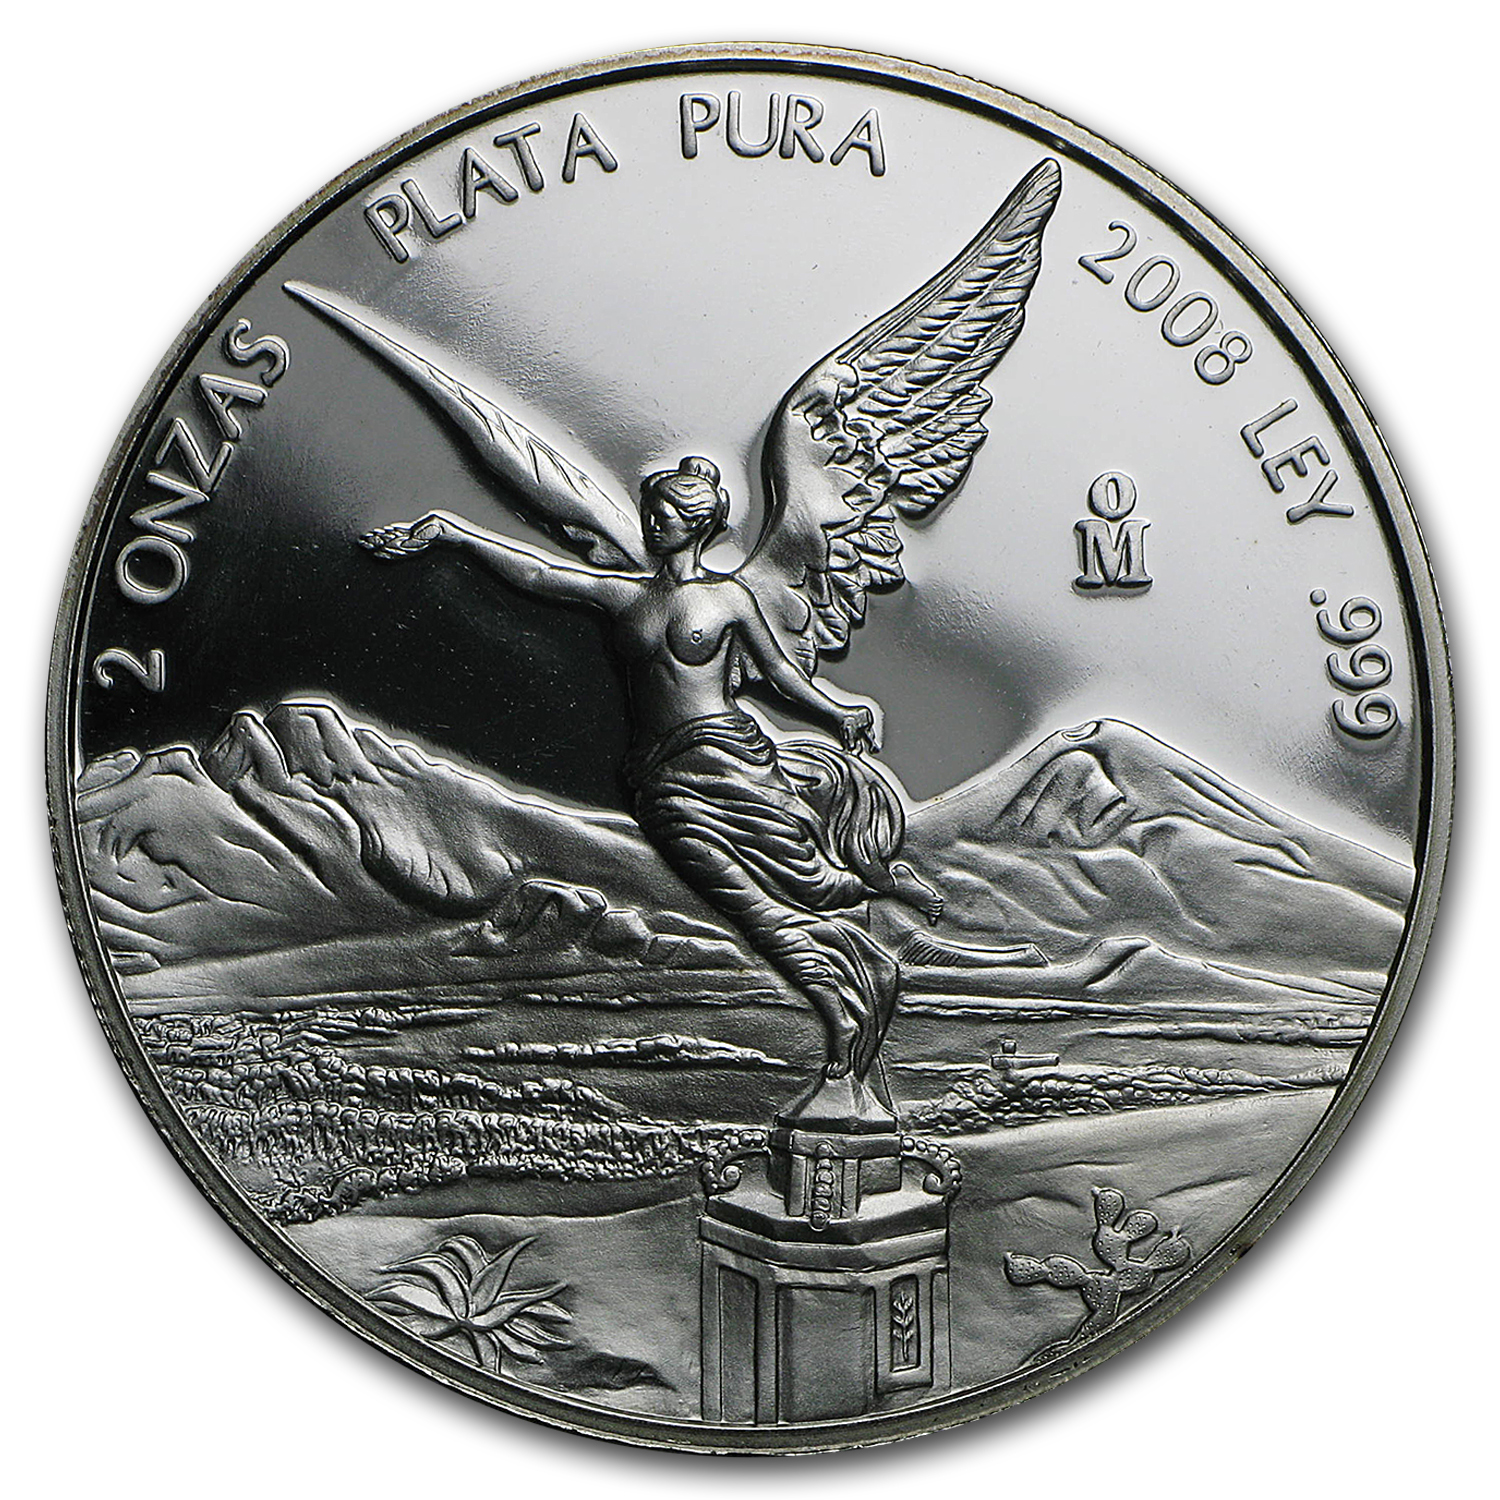 2008 2 oz Silver Mexican Libertad - Proof (In Capsule)